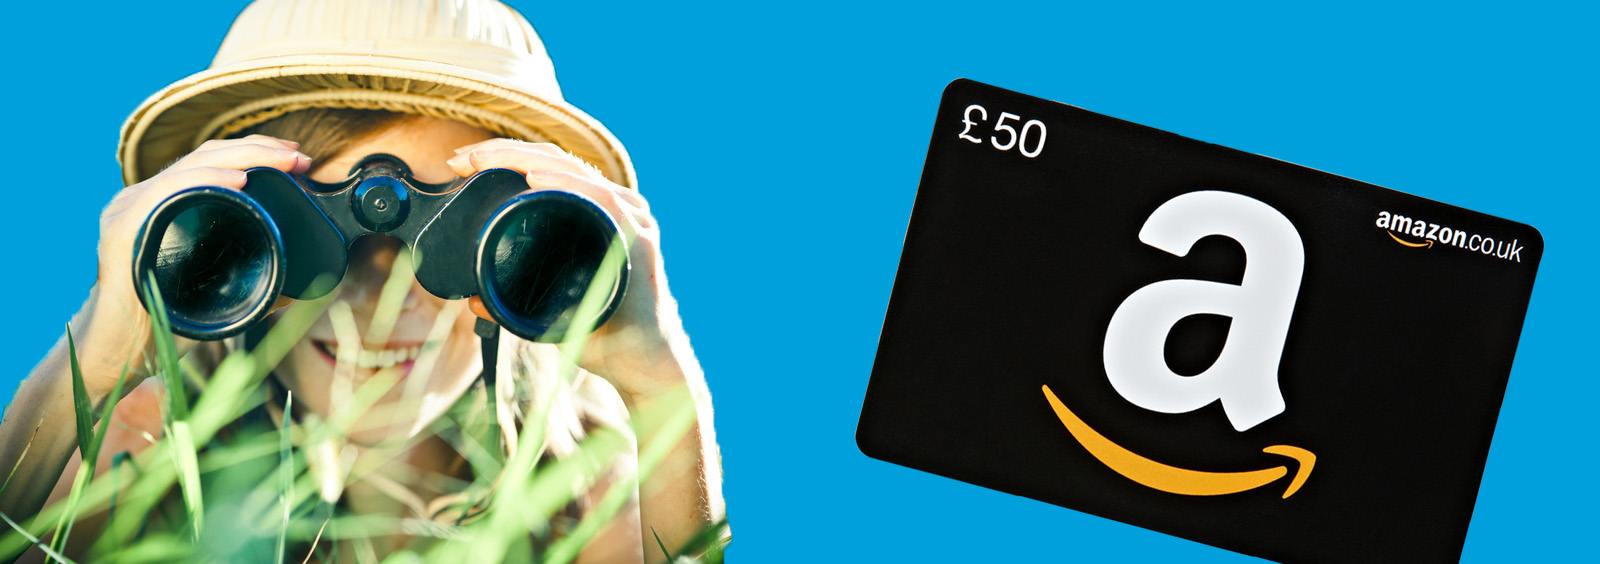 Be awarded an Amazon voucher on a successful lead sent to us